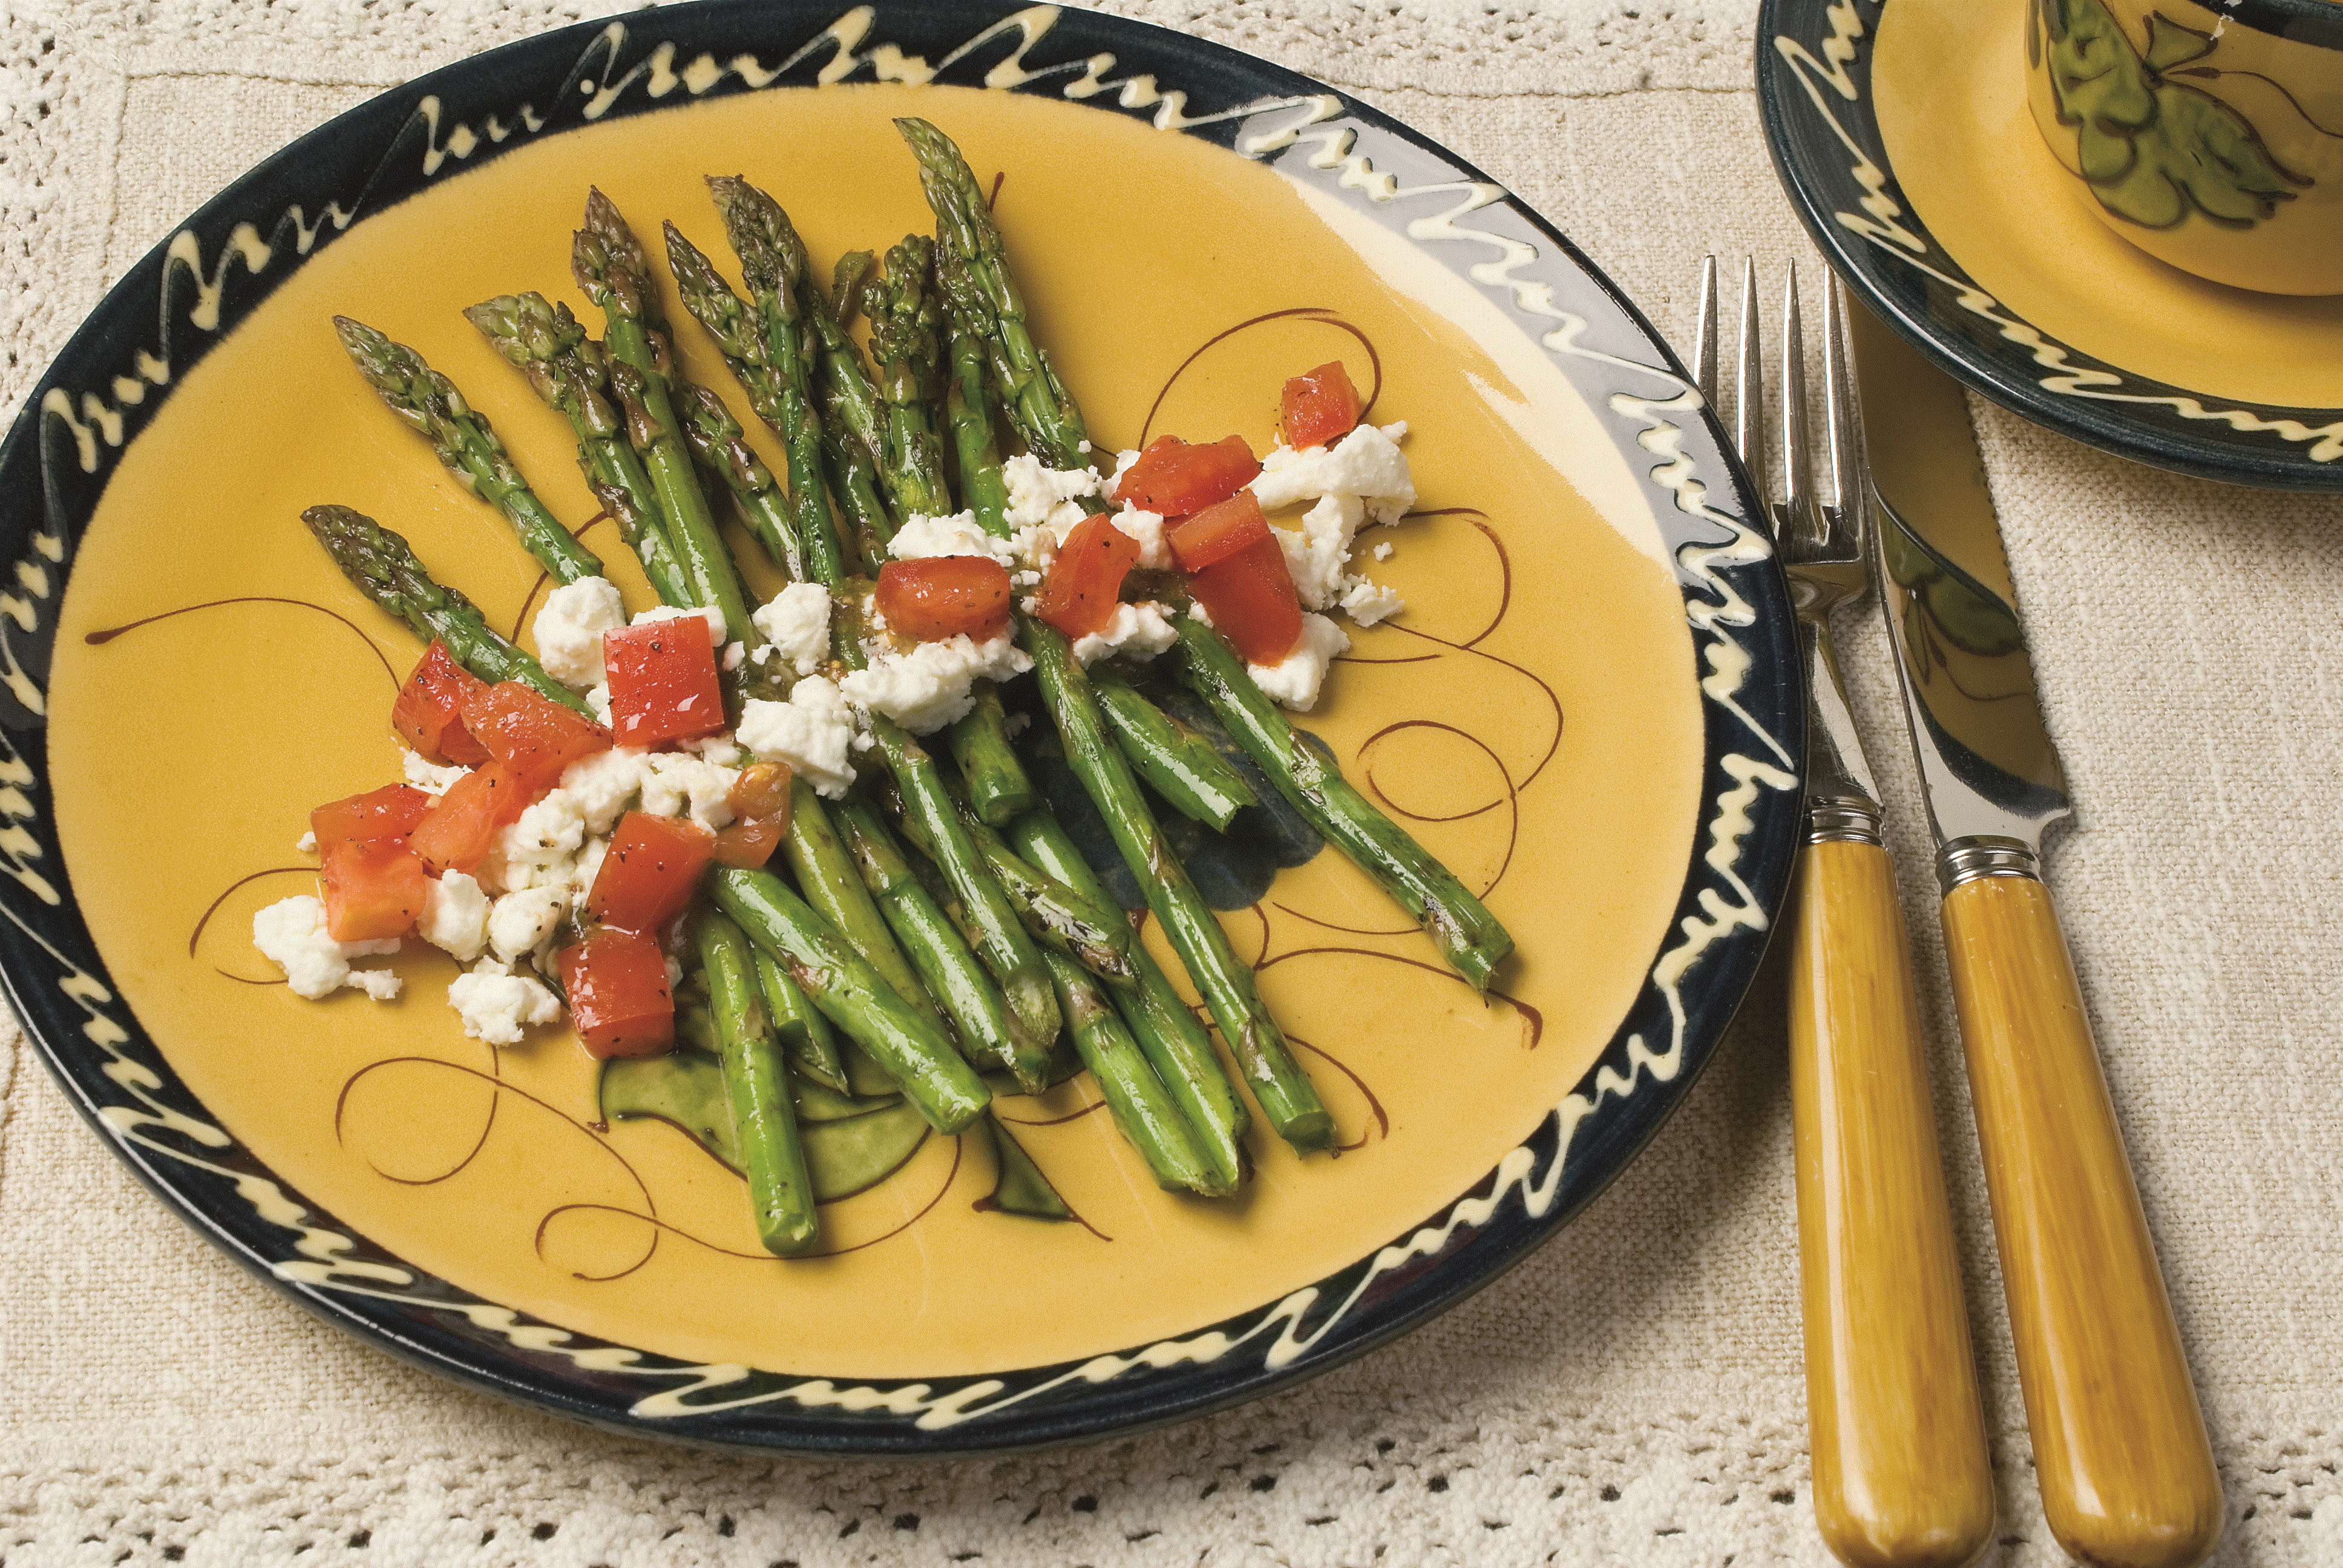 Balsamic Grilled Asparagus topped with Black Pepper Goat Cheese and Mint Sherry Vinaigrette